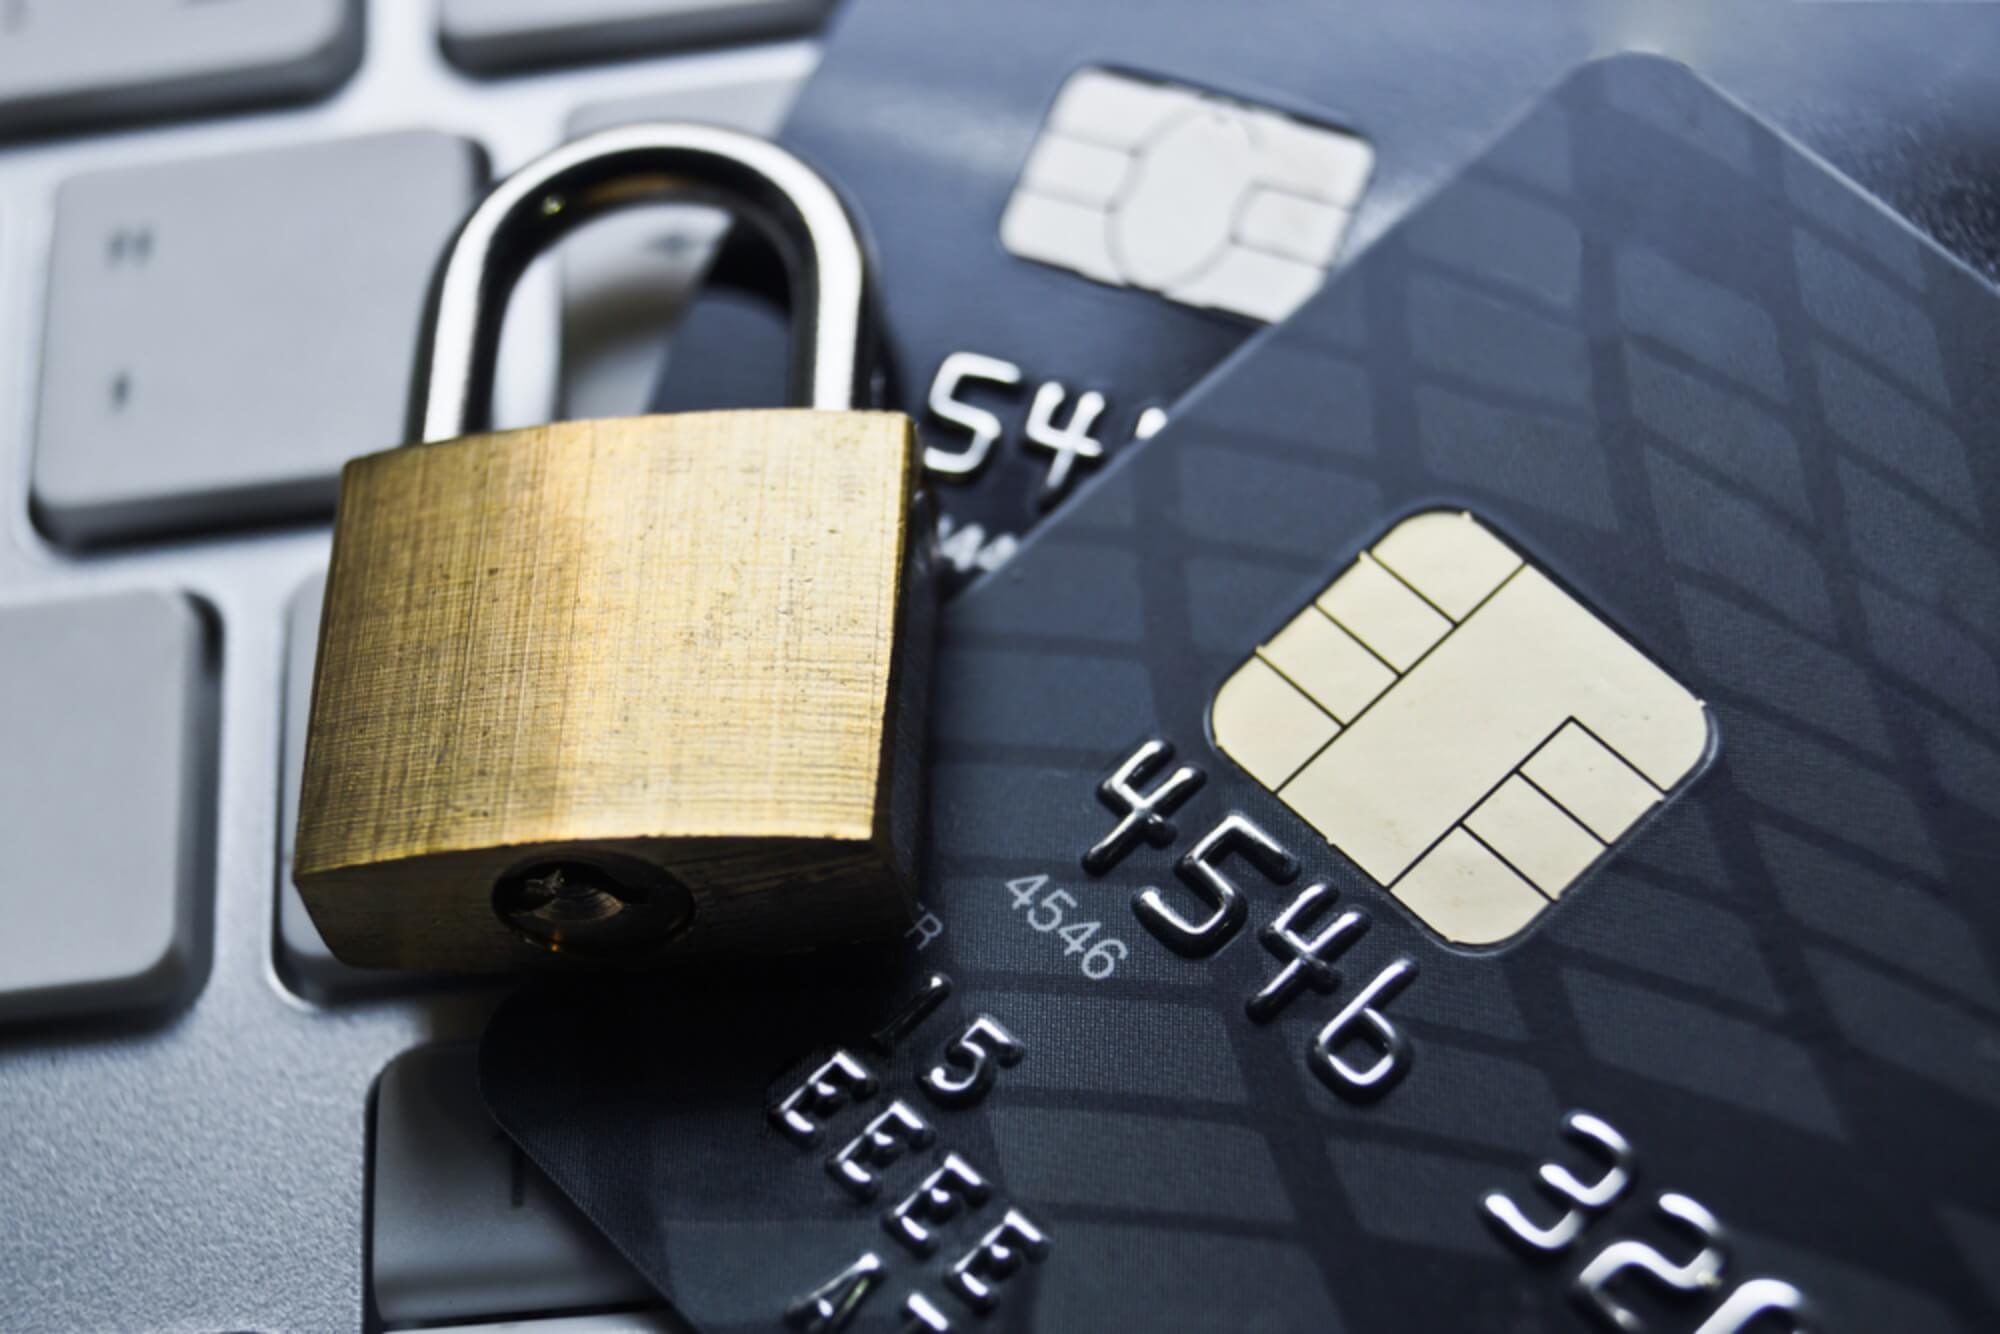 PaymentSecurity